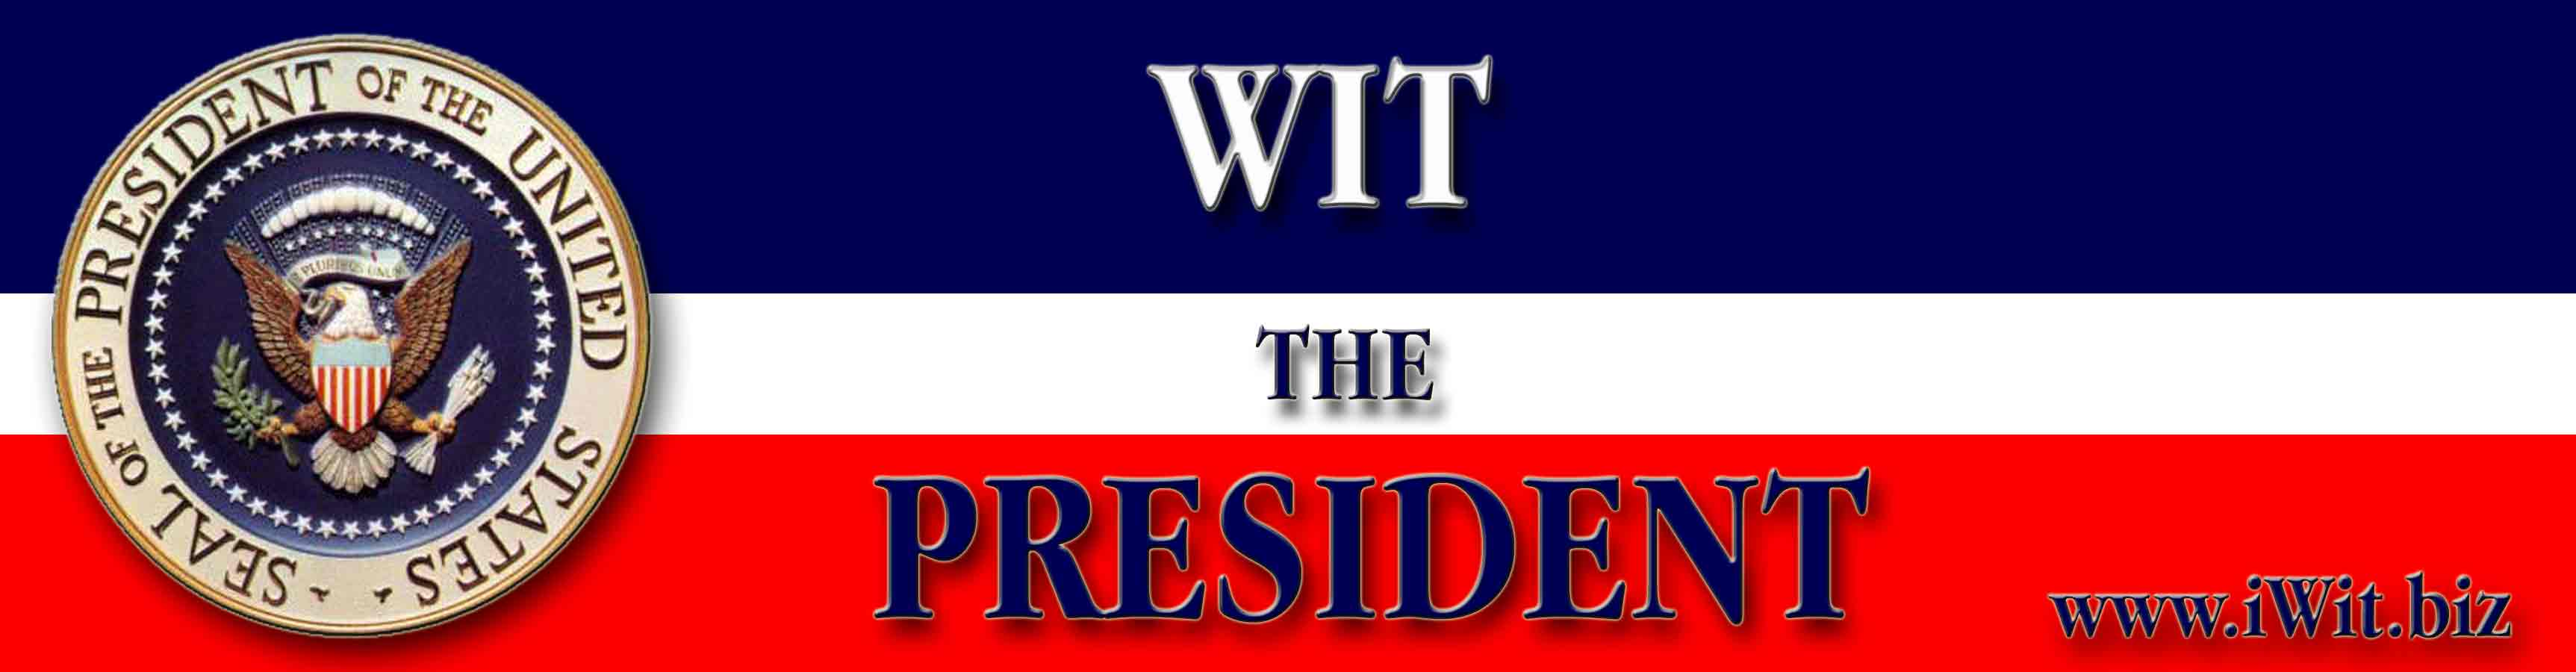 The President by Wit  Bumpersticker 7